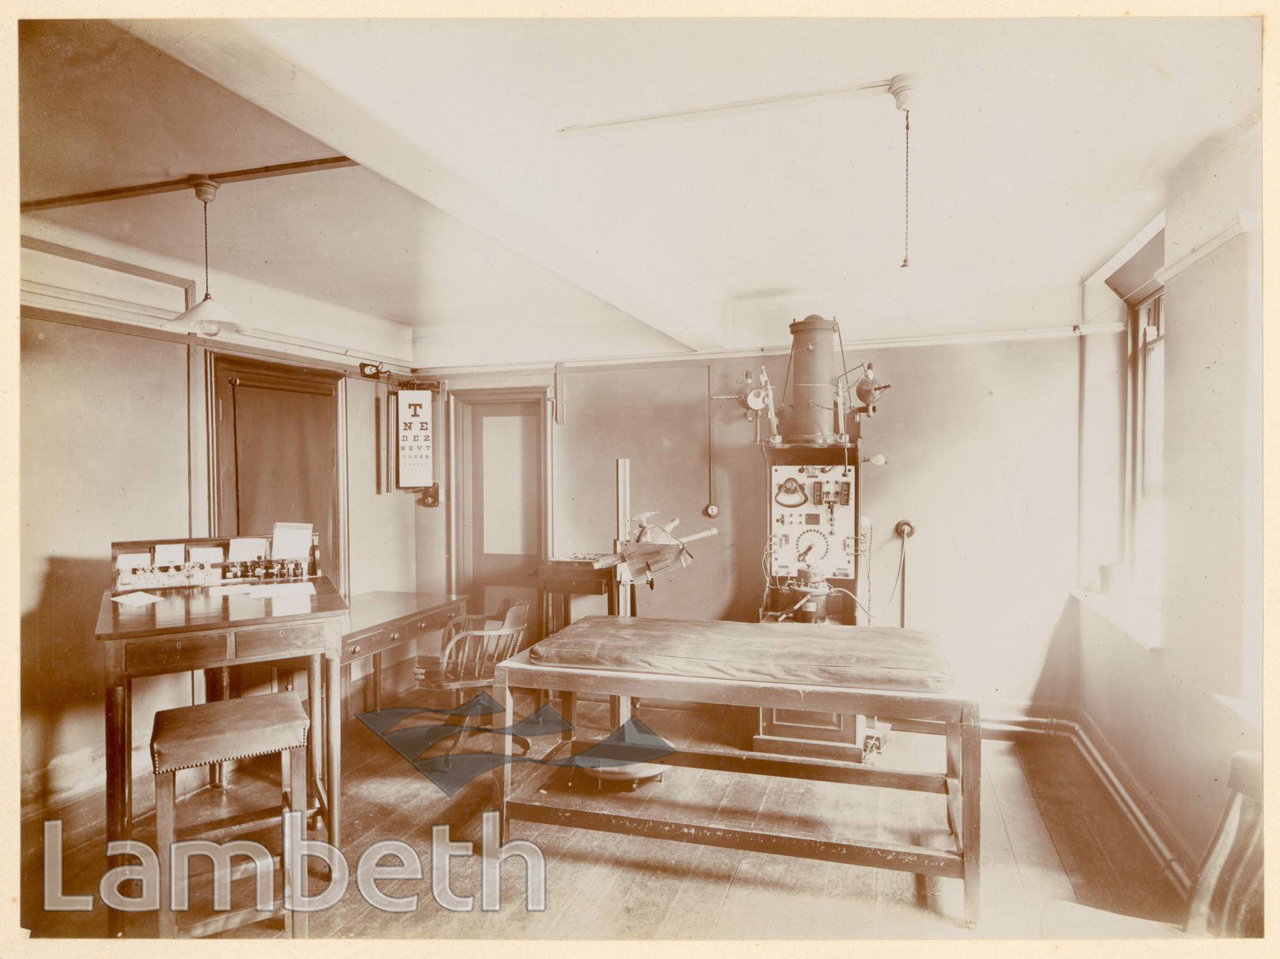 ROYAL WATERLOO HOSPITAL, WATERLOO: EXAMINATION ROOM - LandmarkLandmark